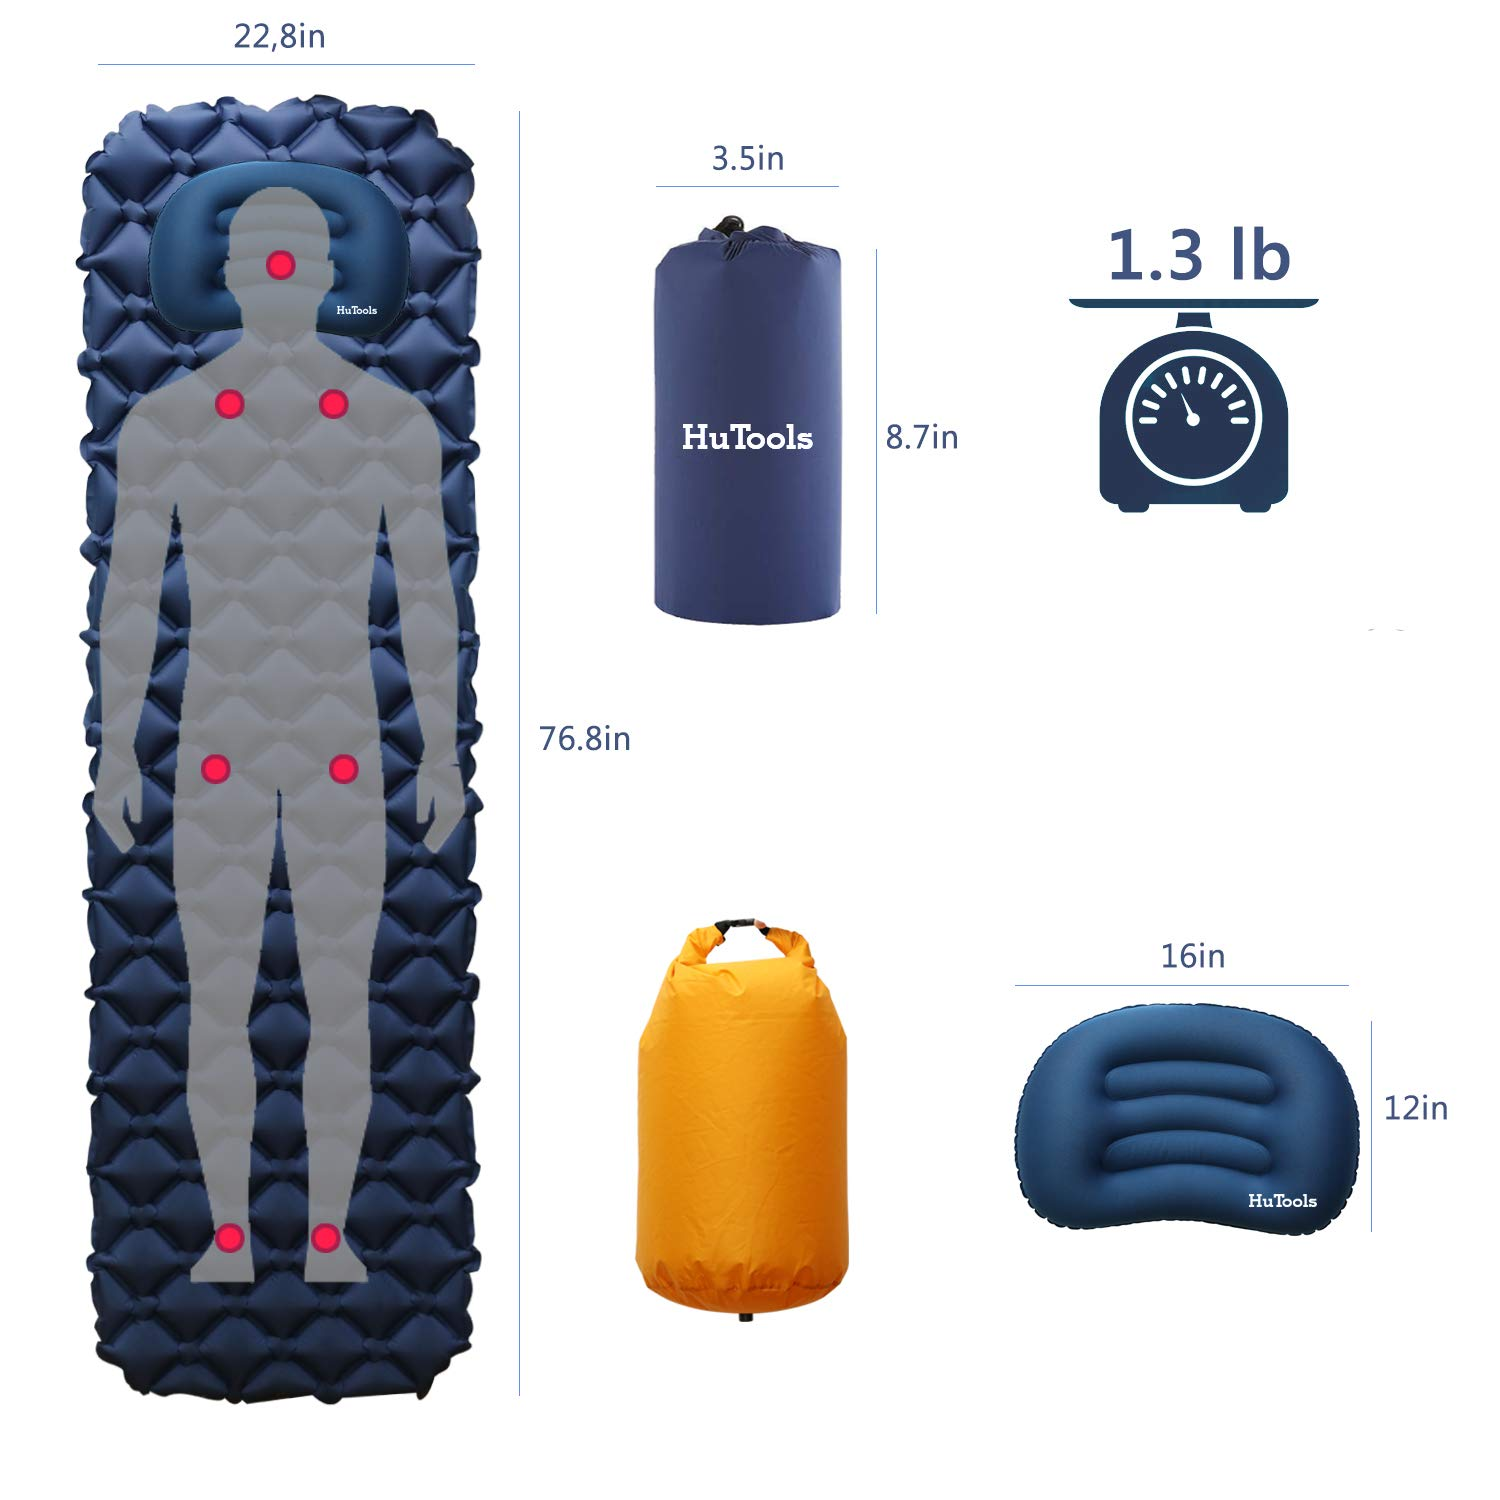 HuTools Sleeping Pad for Camping with Pillow Inflatable Sleeping Pad for Backpacking Inflatable Camping Mattress for Sleeping Bag Pad Camping Pad for Travel Hiking Pump Sacks Included